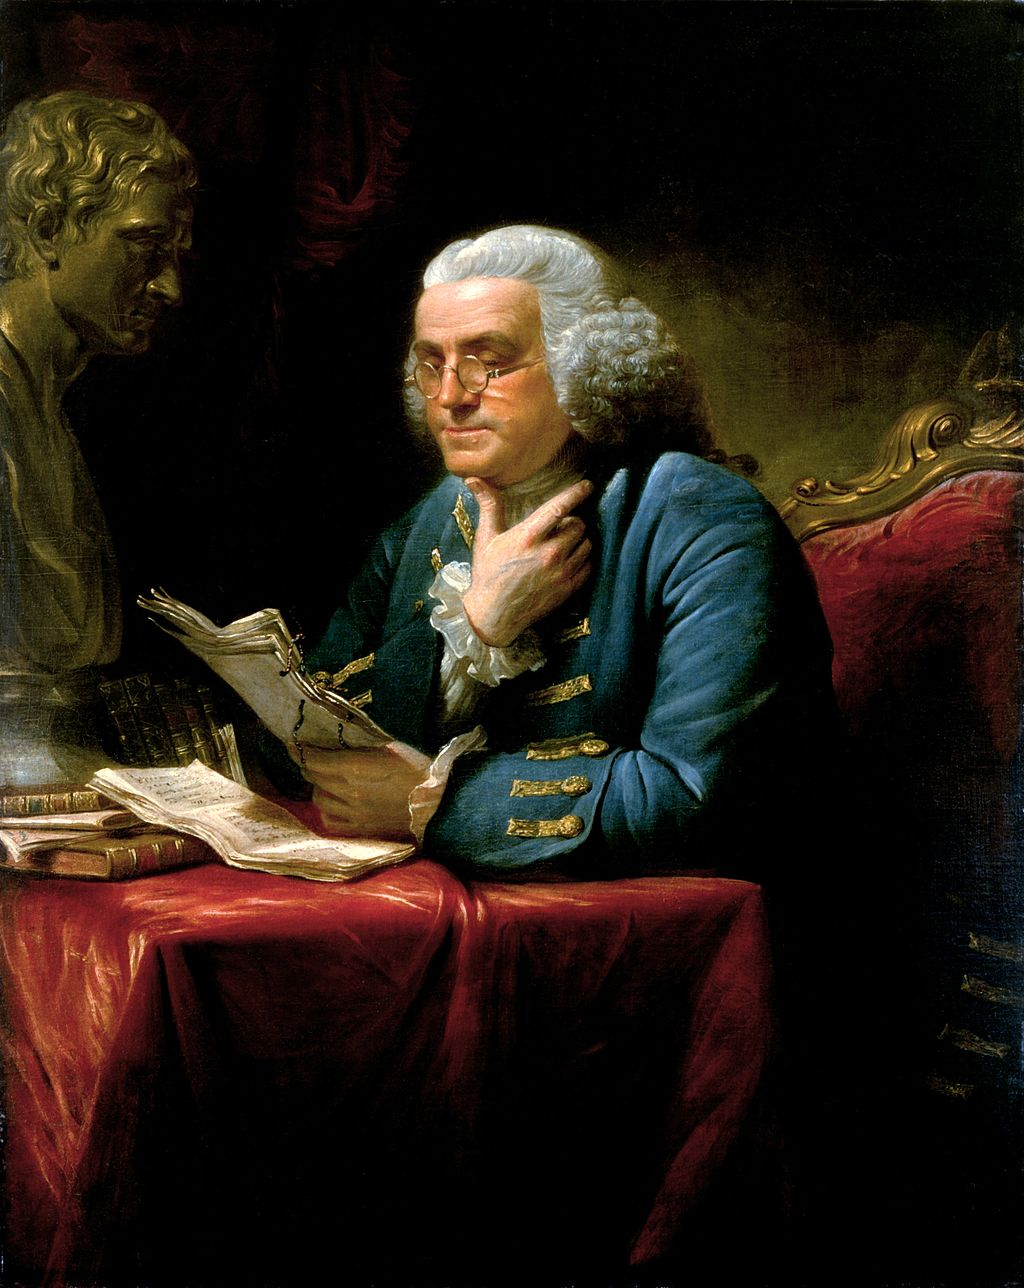 A portrait of Benjamin Franklin from 1767. Portrait by David Martin.